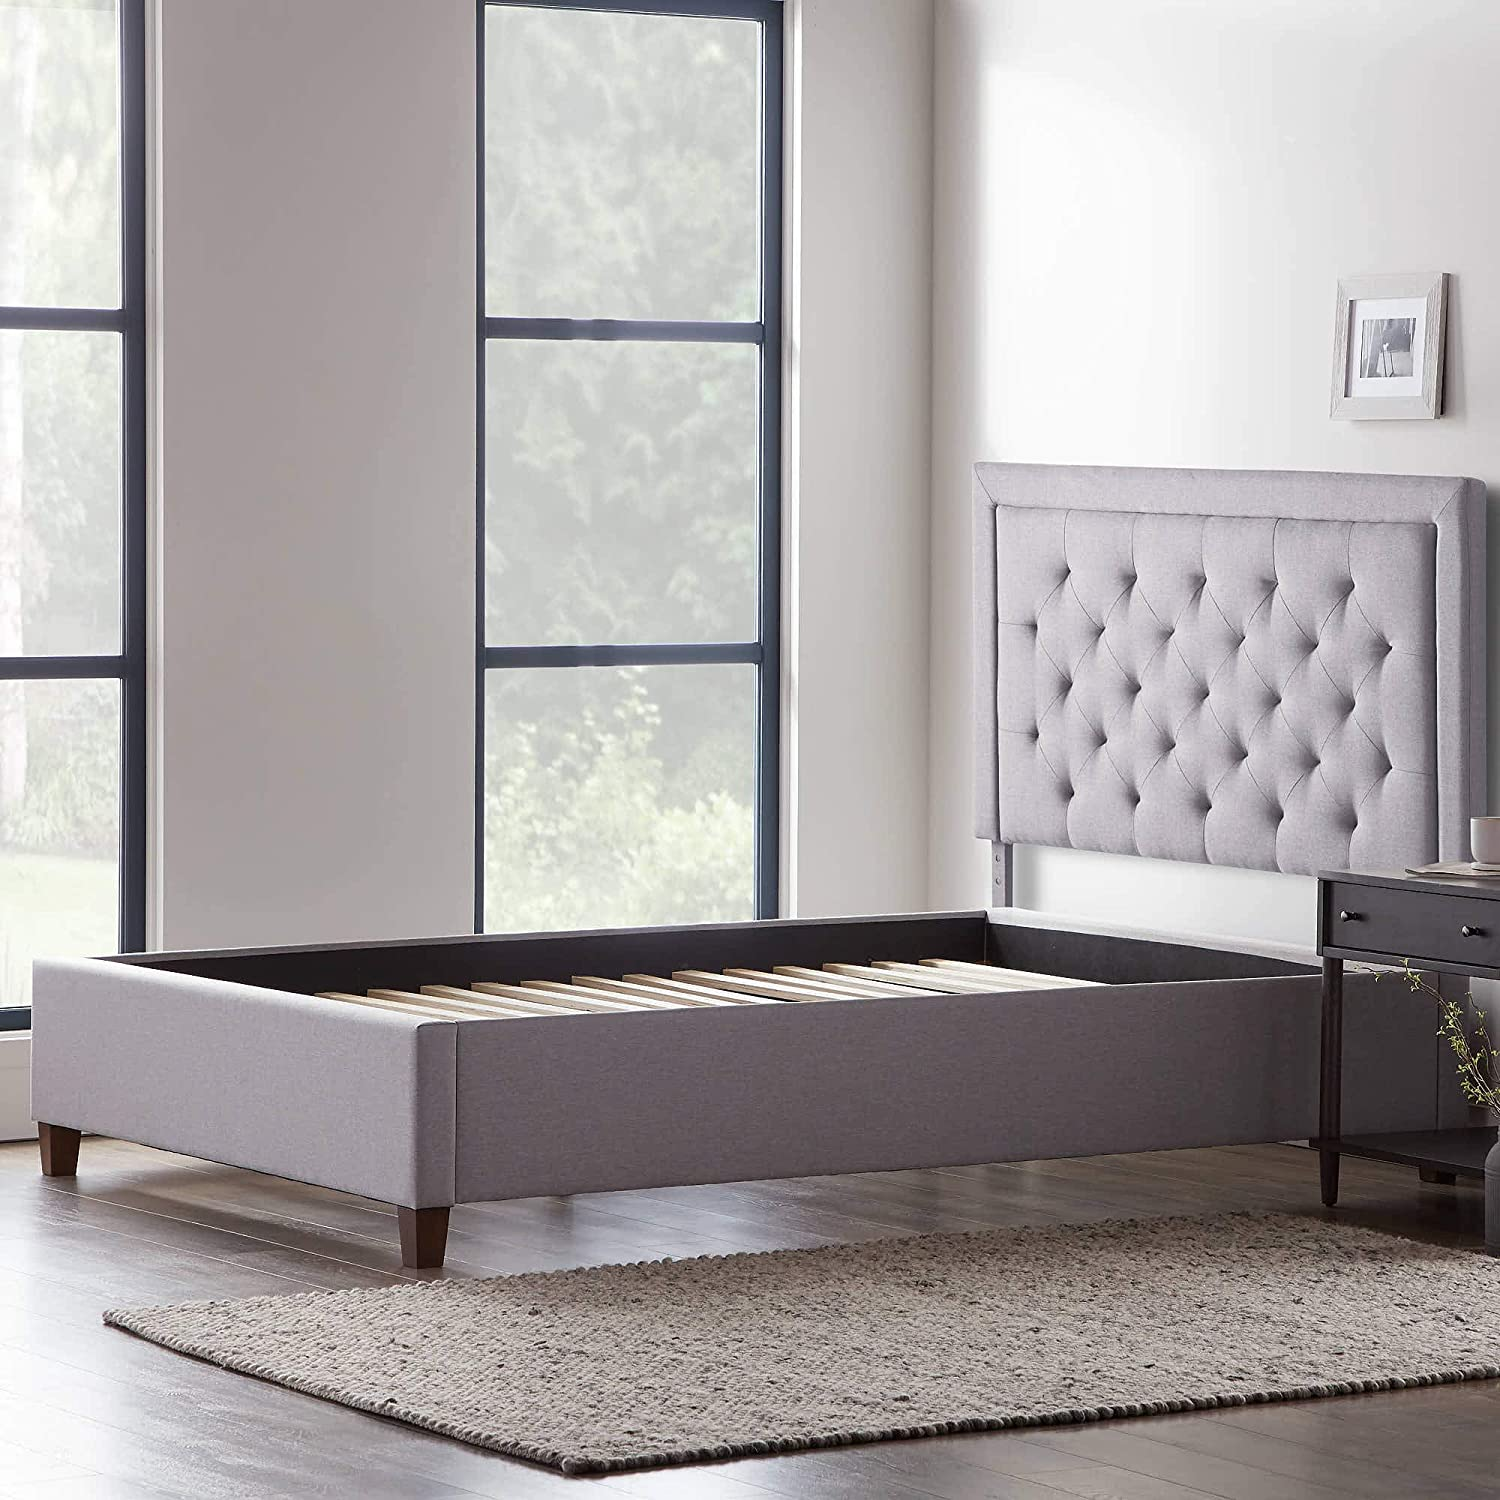 LUCID Bordered Upholstered Headboard with Diamond Tufting with LUCID Upholstered Platform Bed with Slats, Twin, Stone